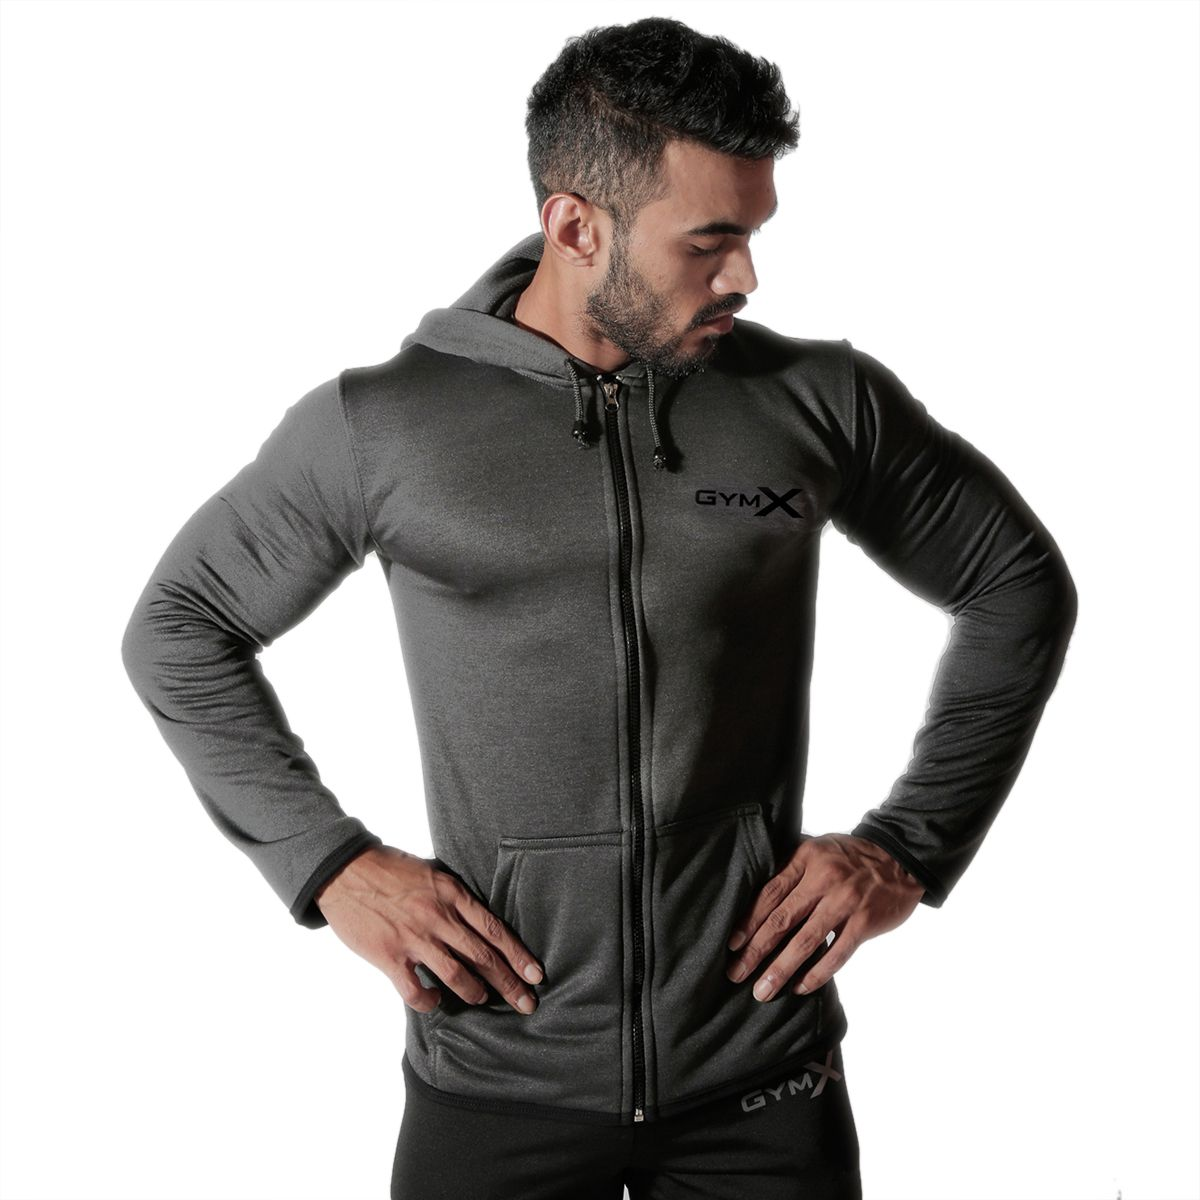 GymX Men Cotton Carbon Grey- Vortex Hoodies